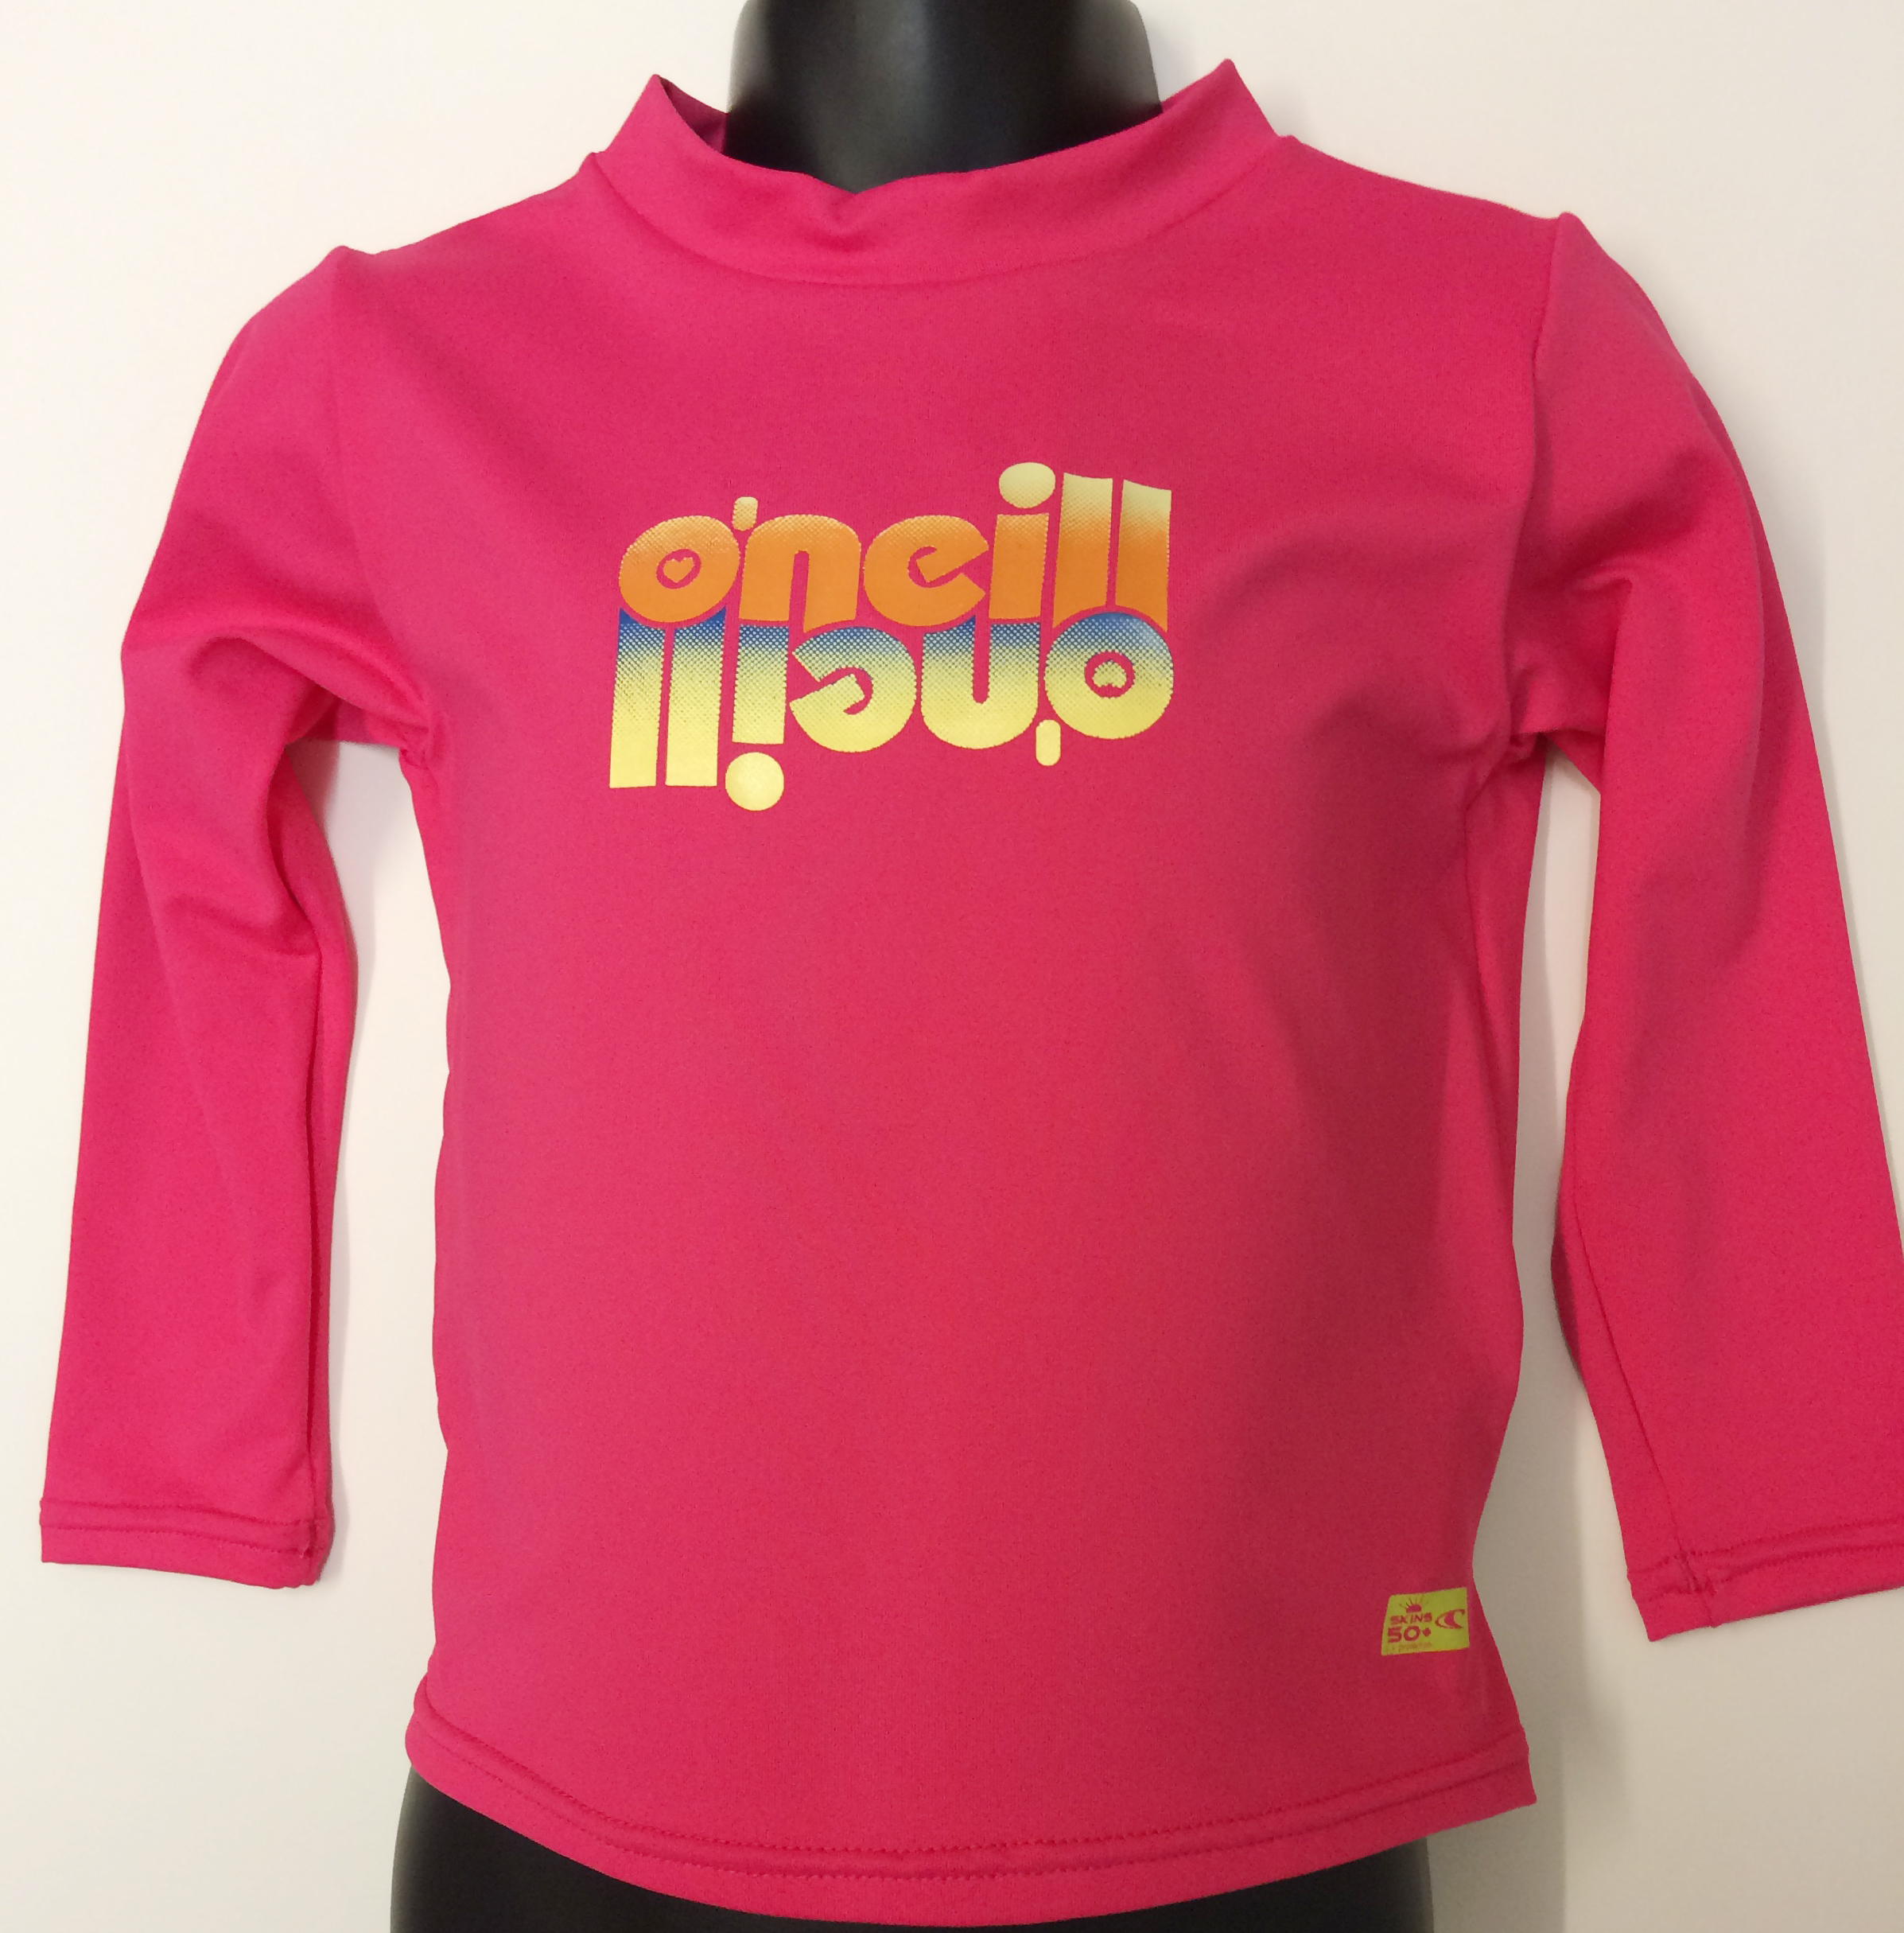 O'Neill Girls Long Sleeve Sun Top - Pink